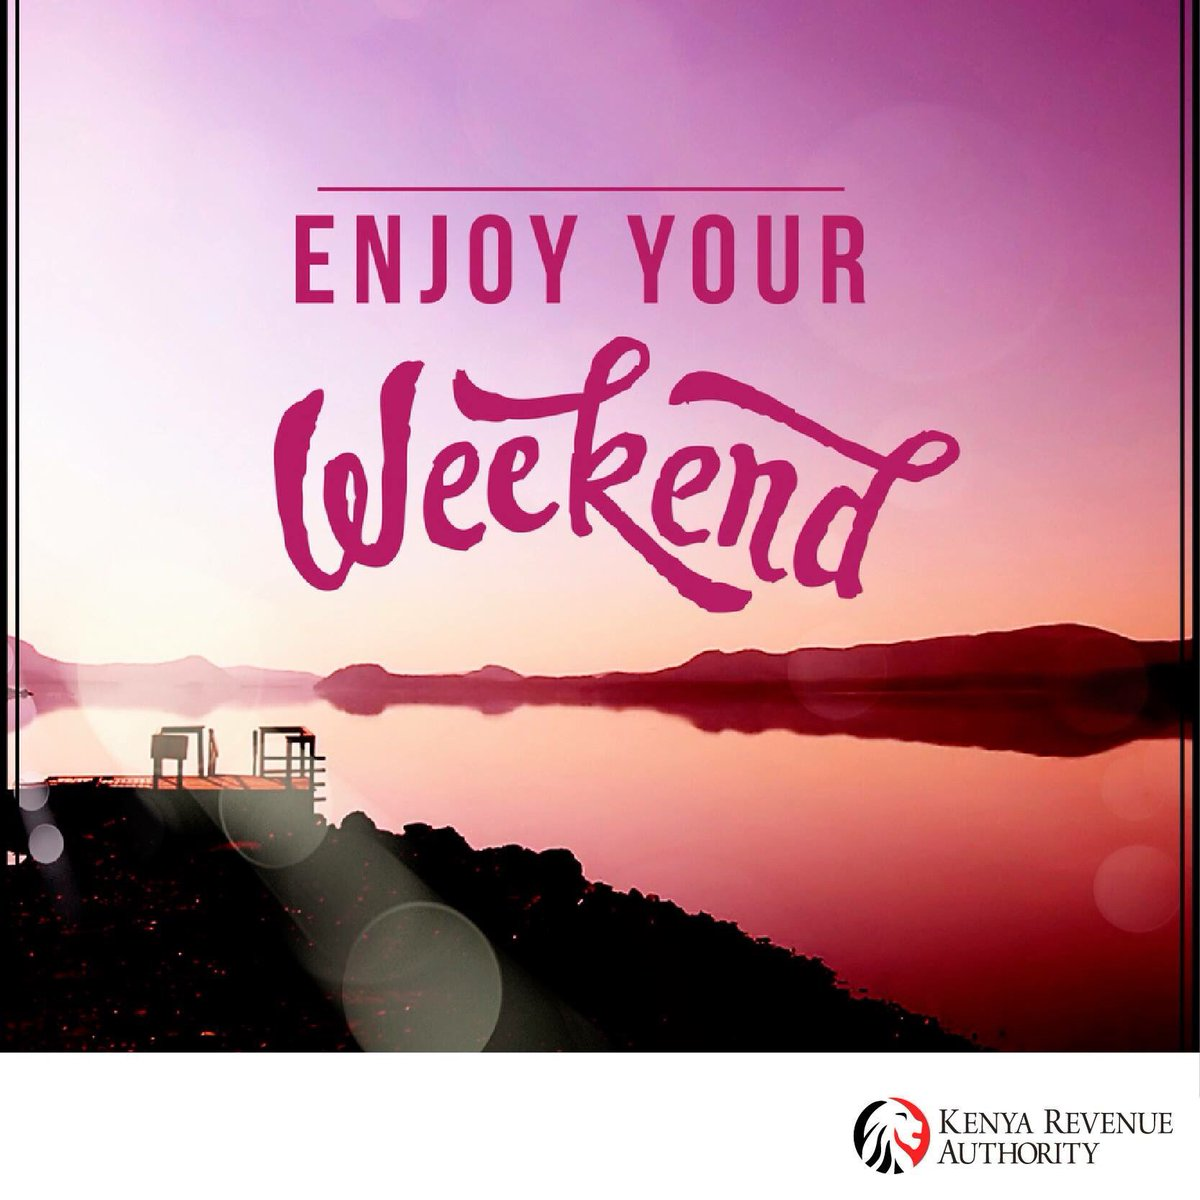 Kra Care On Twitter The Weekend Is Here Take Time Off And Get